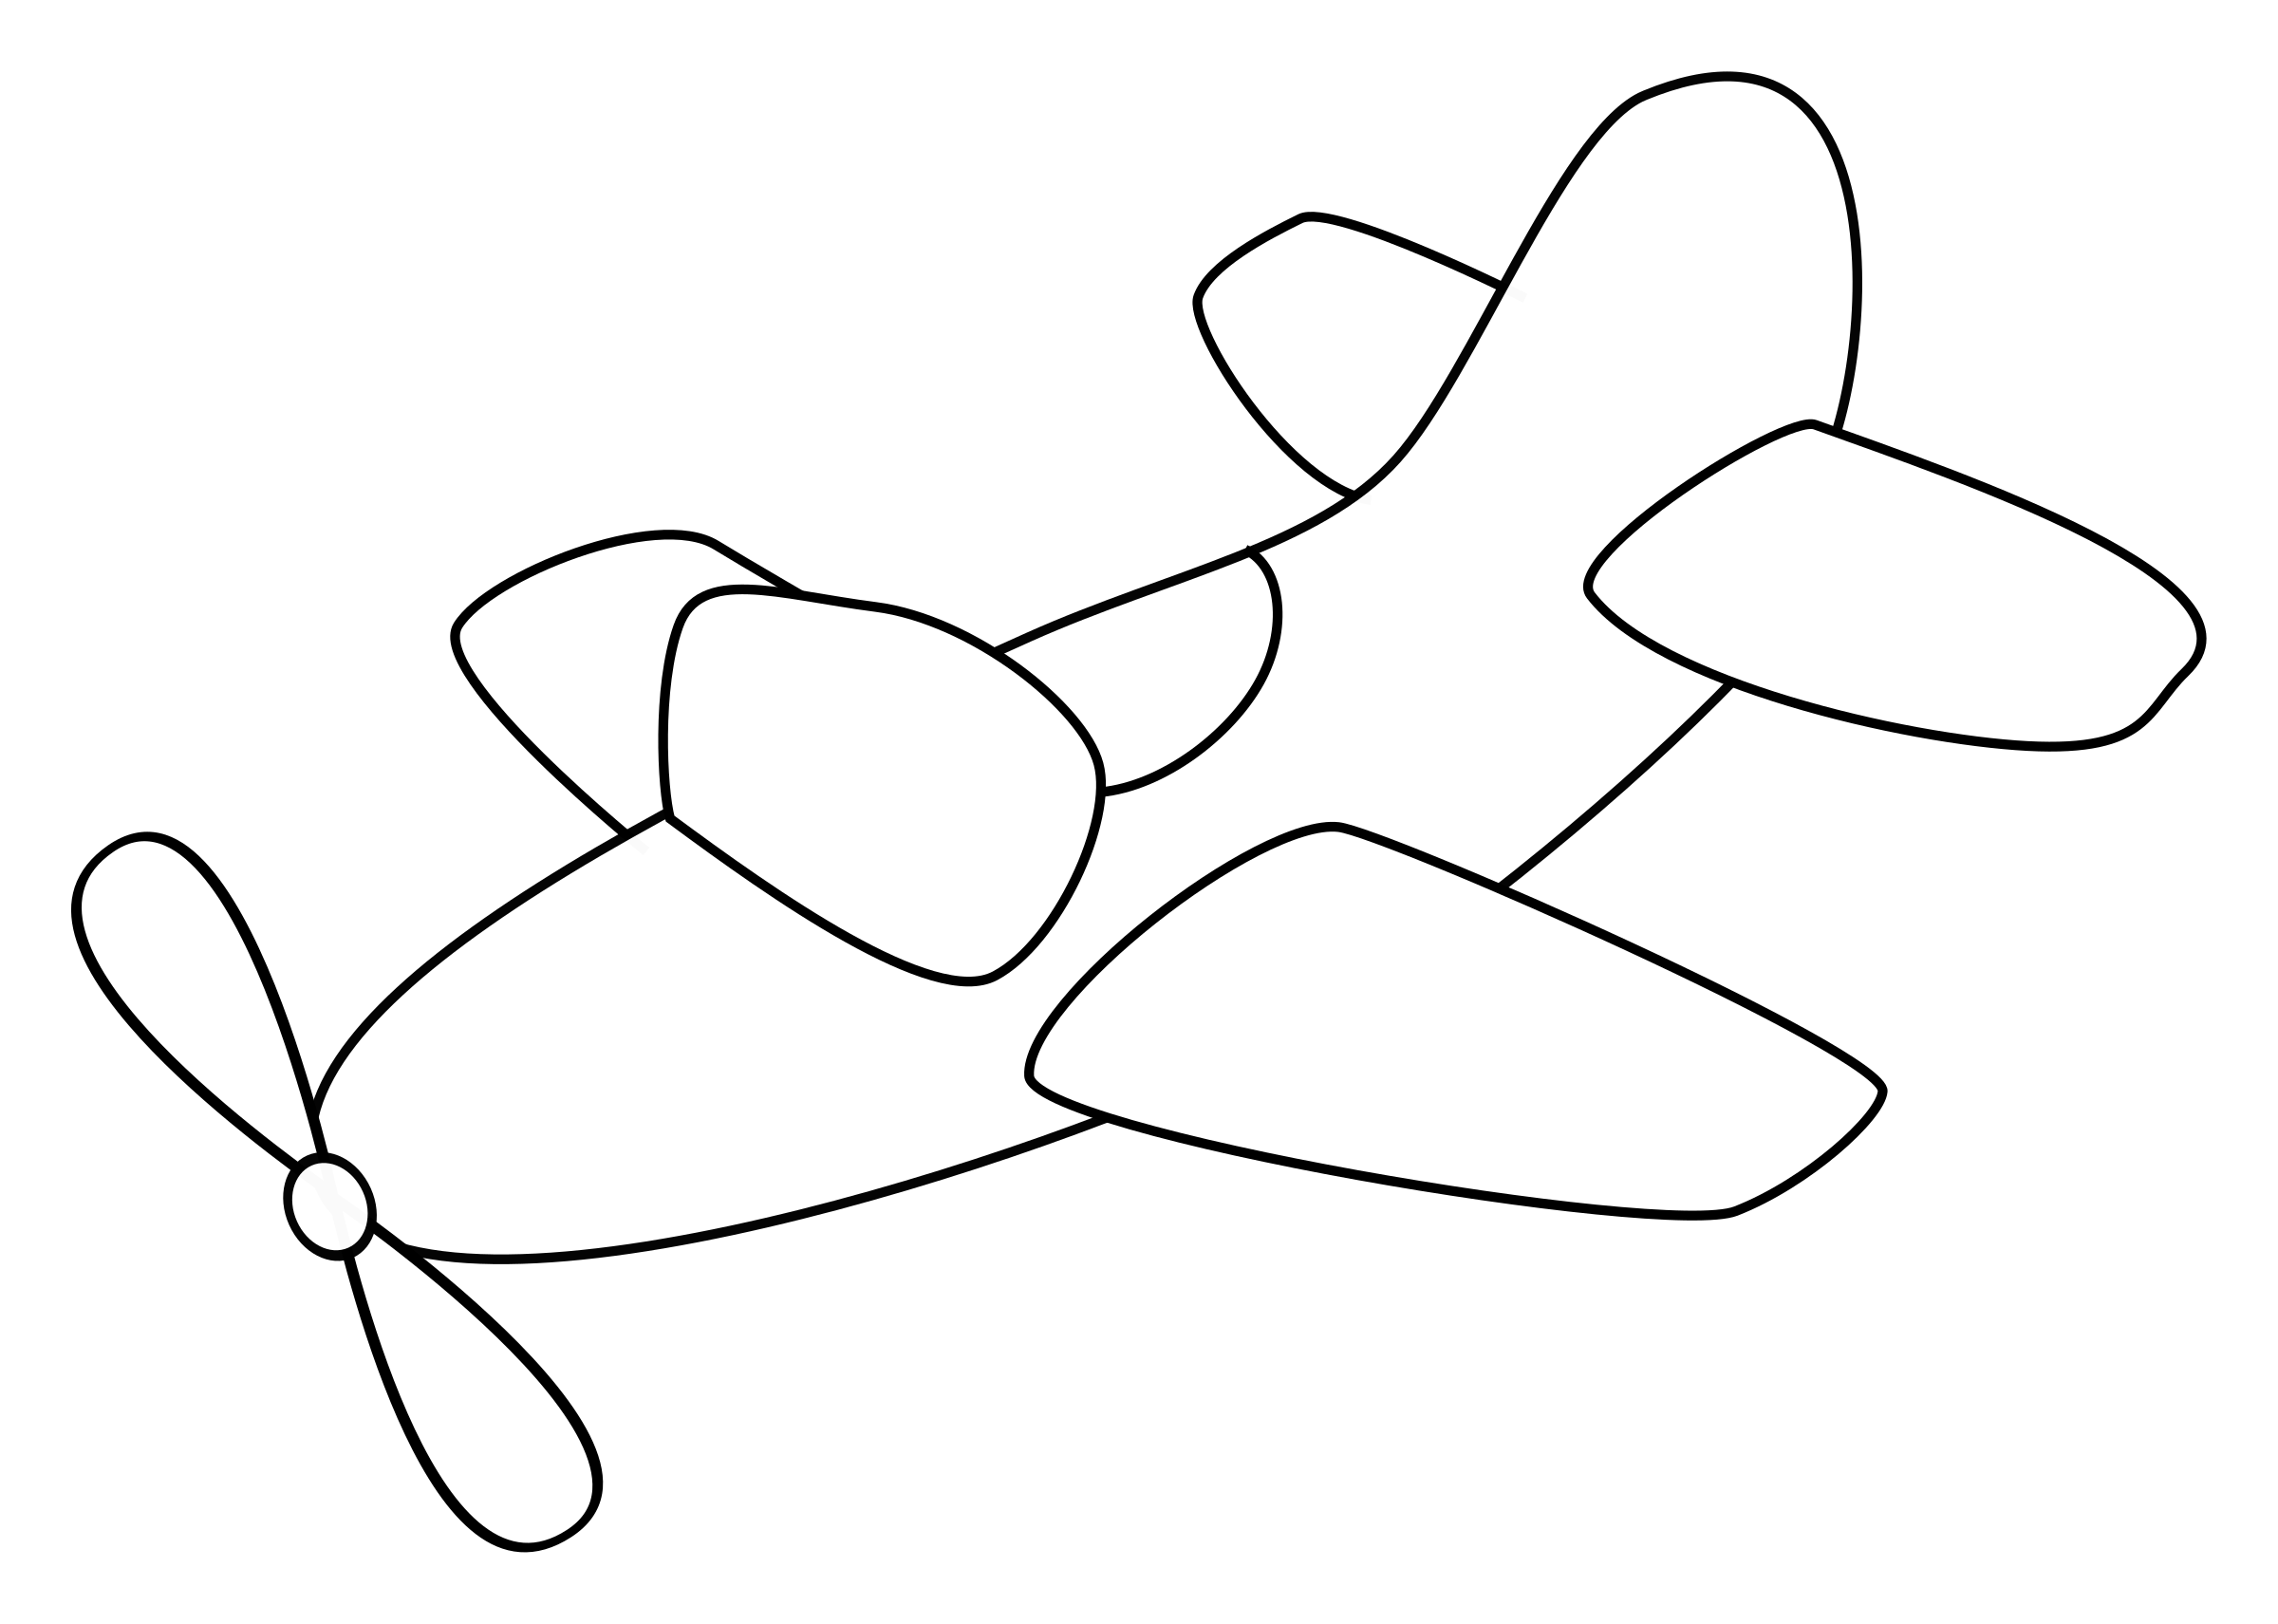 Airplane with propeller - outline by spacefem